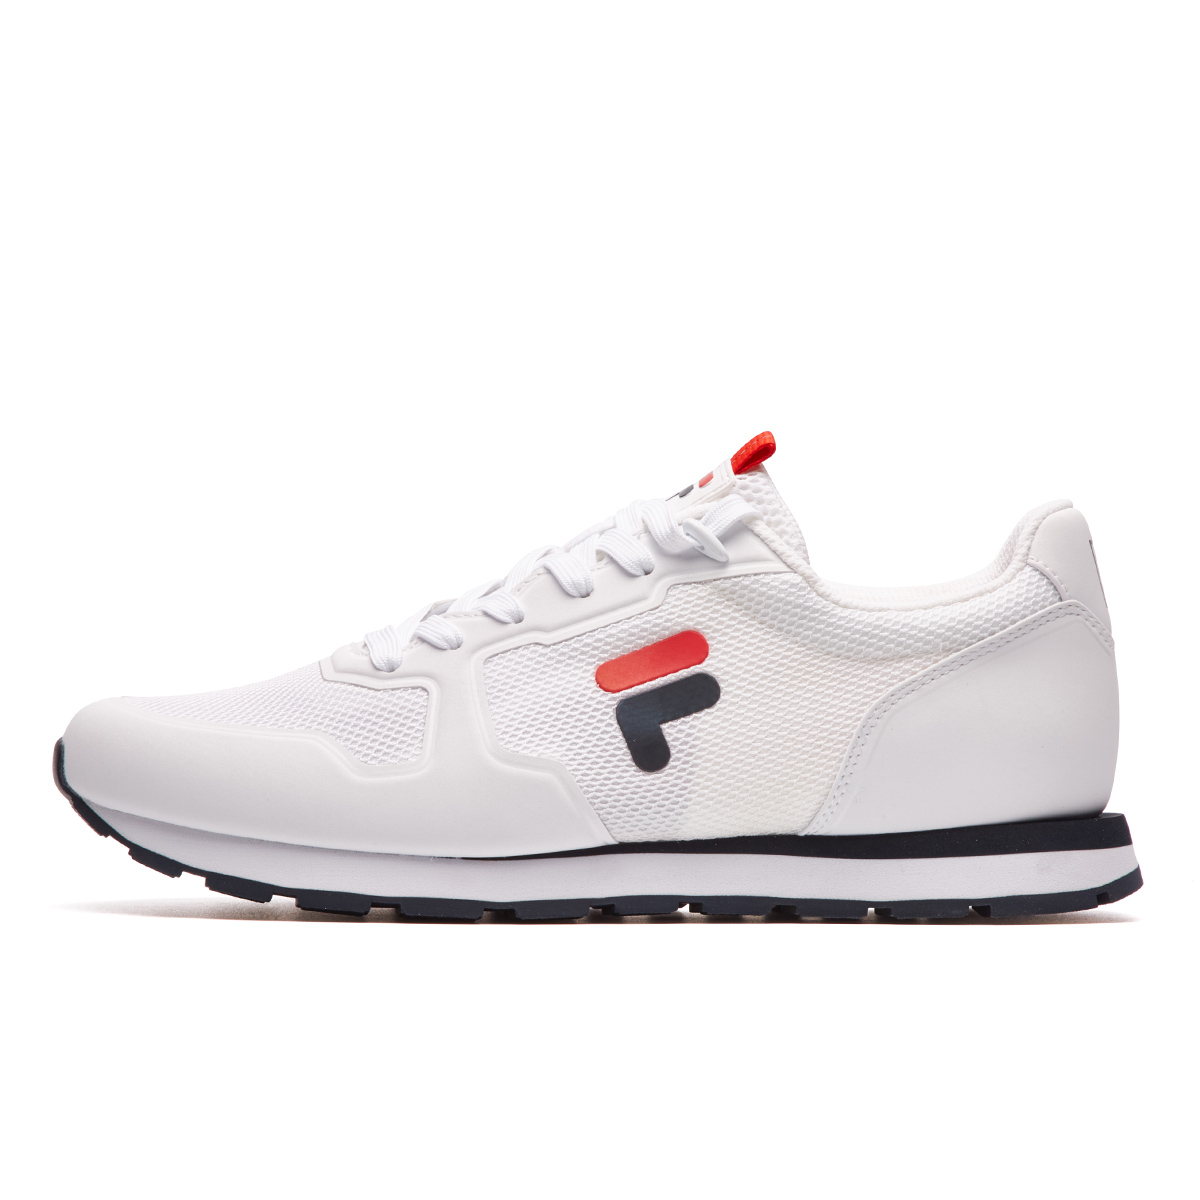 USD 180.00] FILA Fila men's shoes 2018 spring new retro